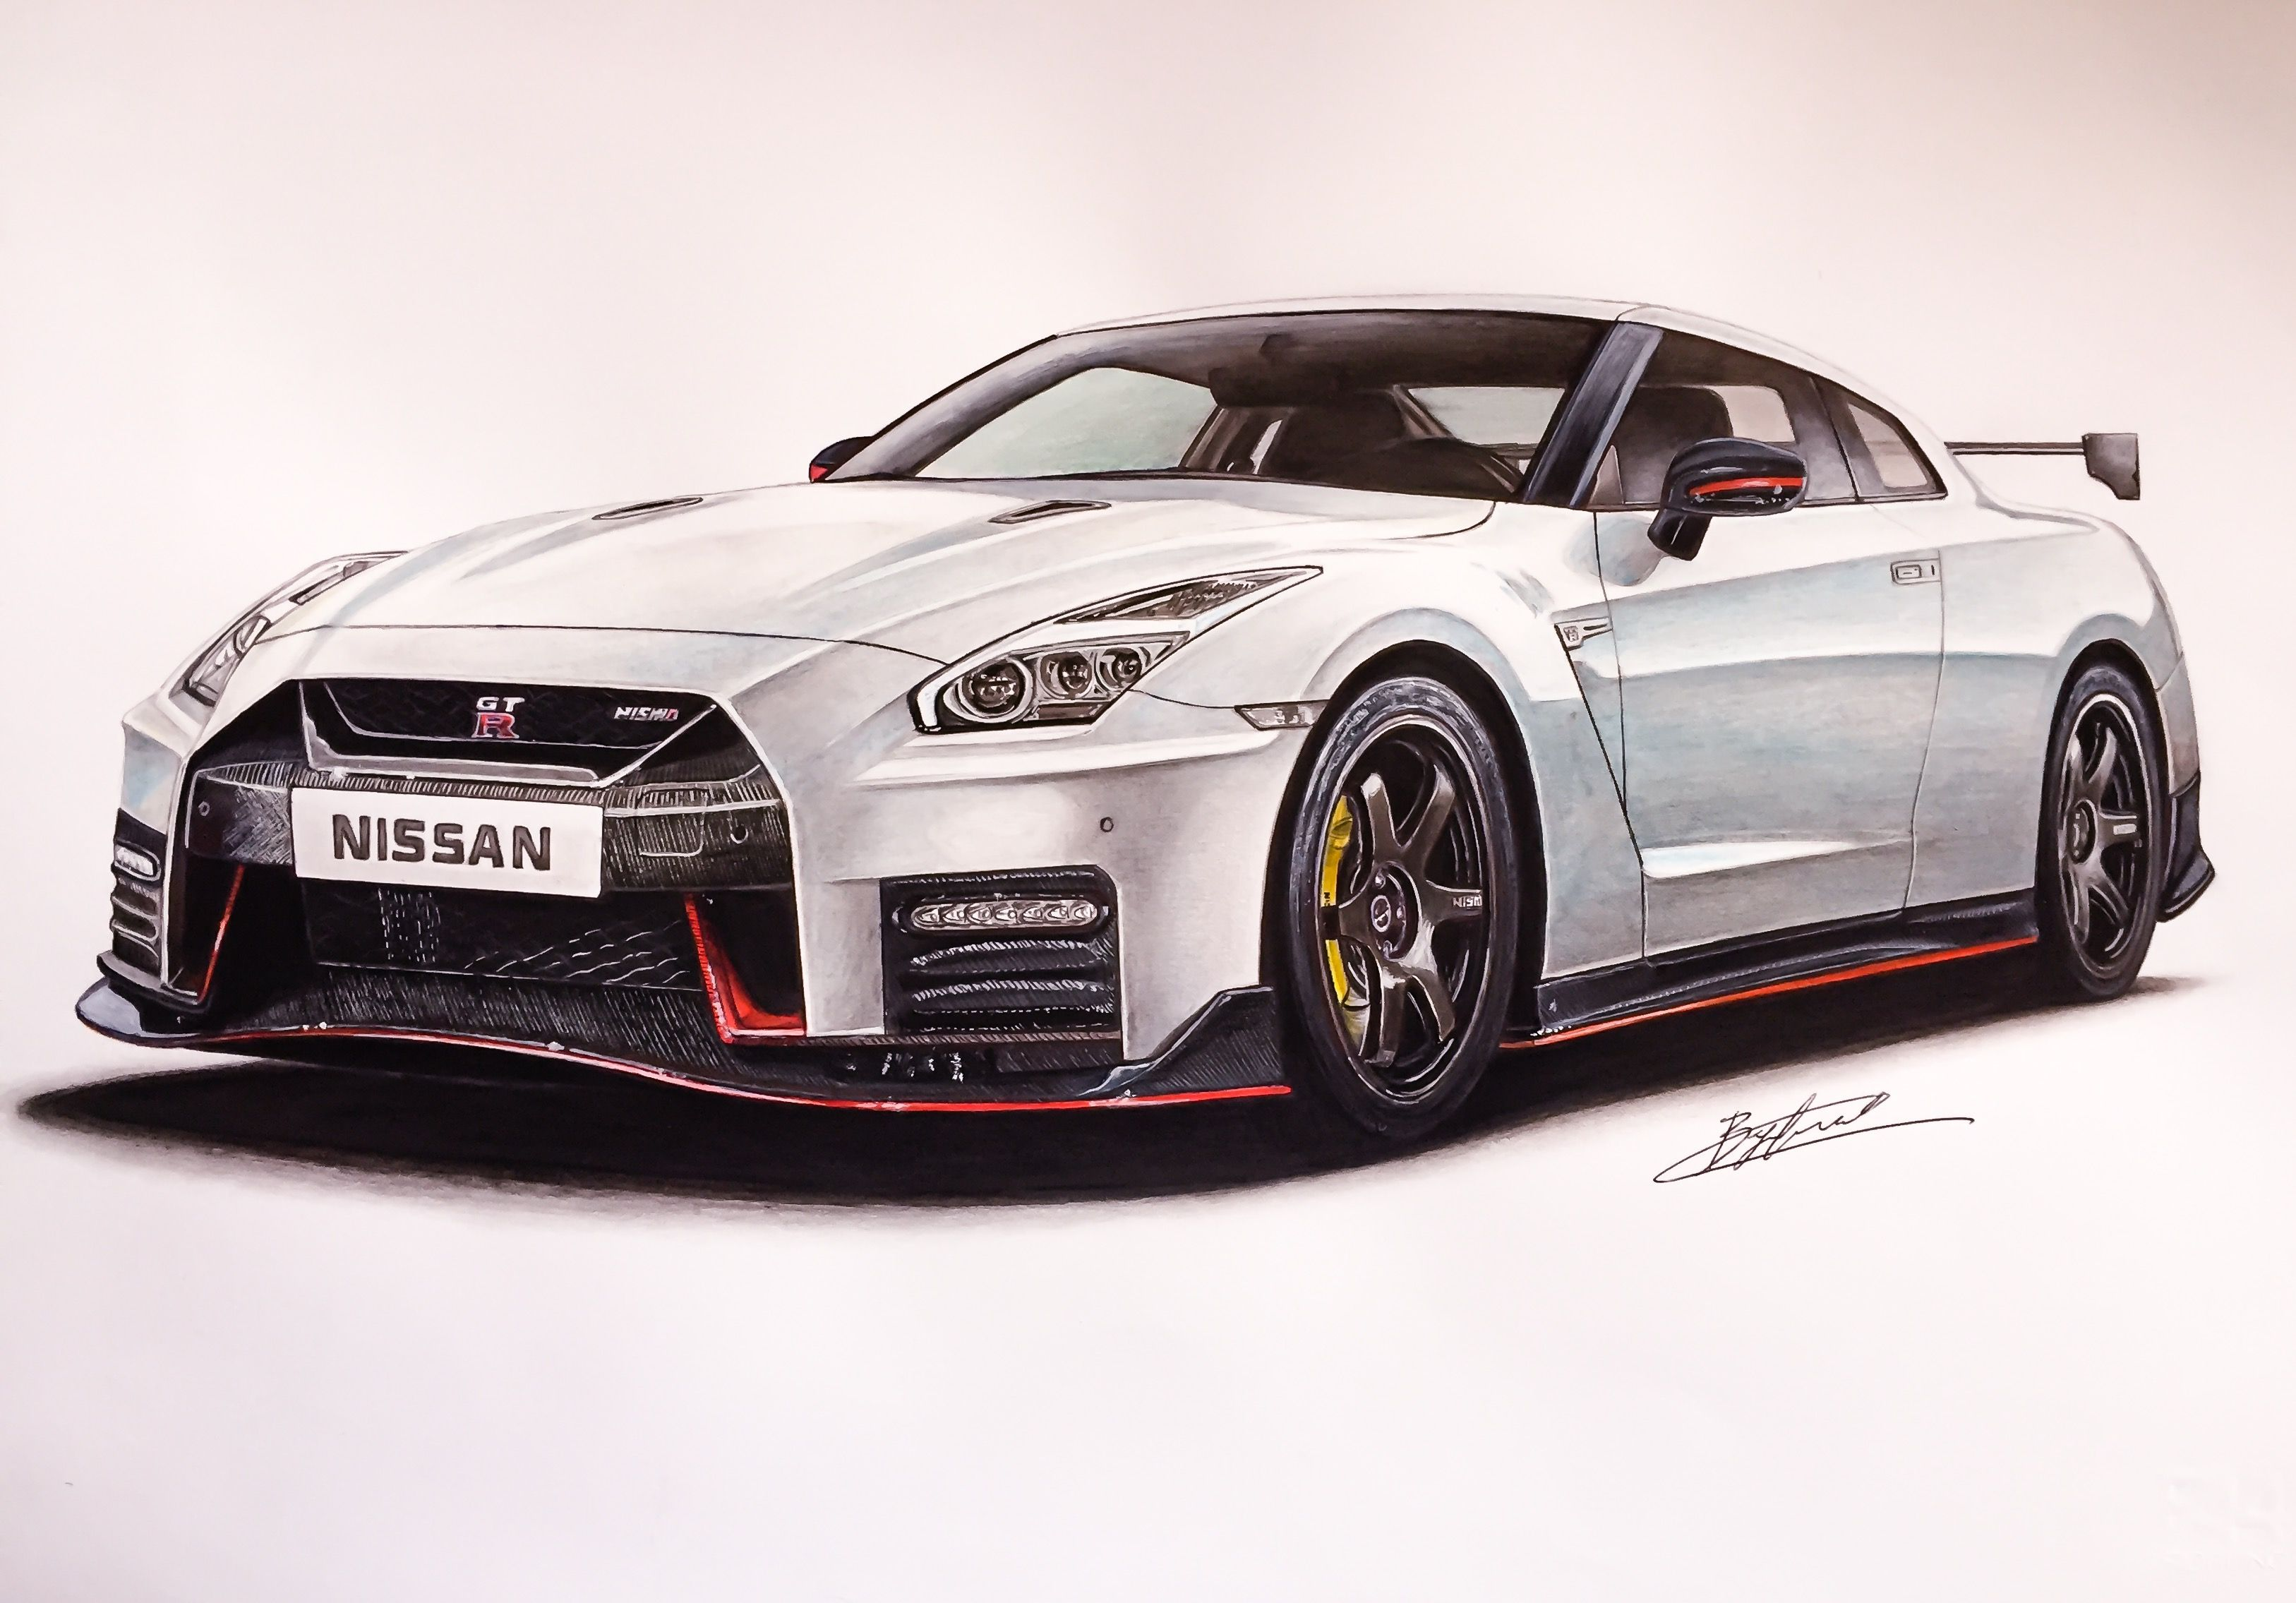 nissan gtr nismo 2017 drawing supercar by filo. Black Bedroom Furniture Sets. Home Design Ideas